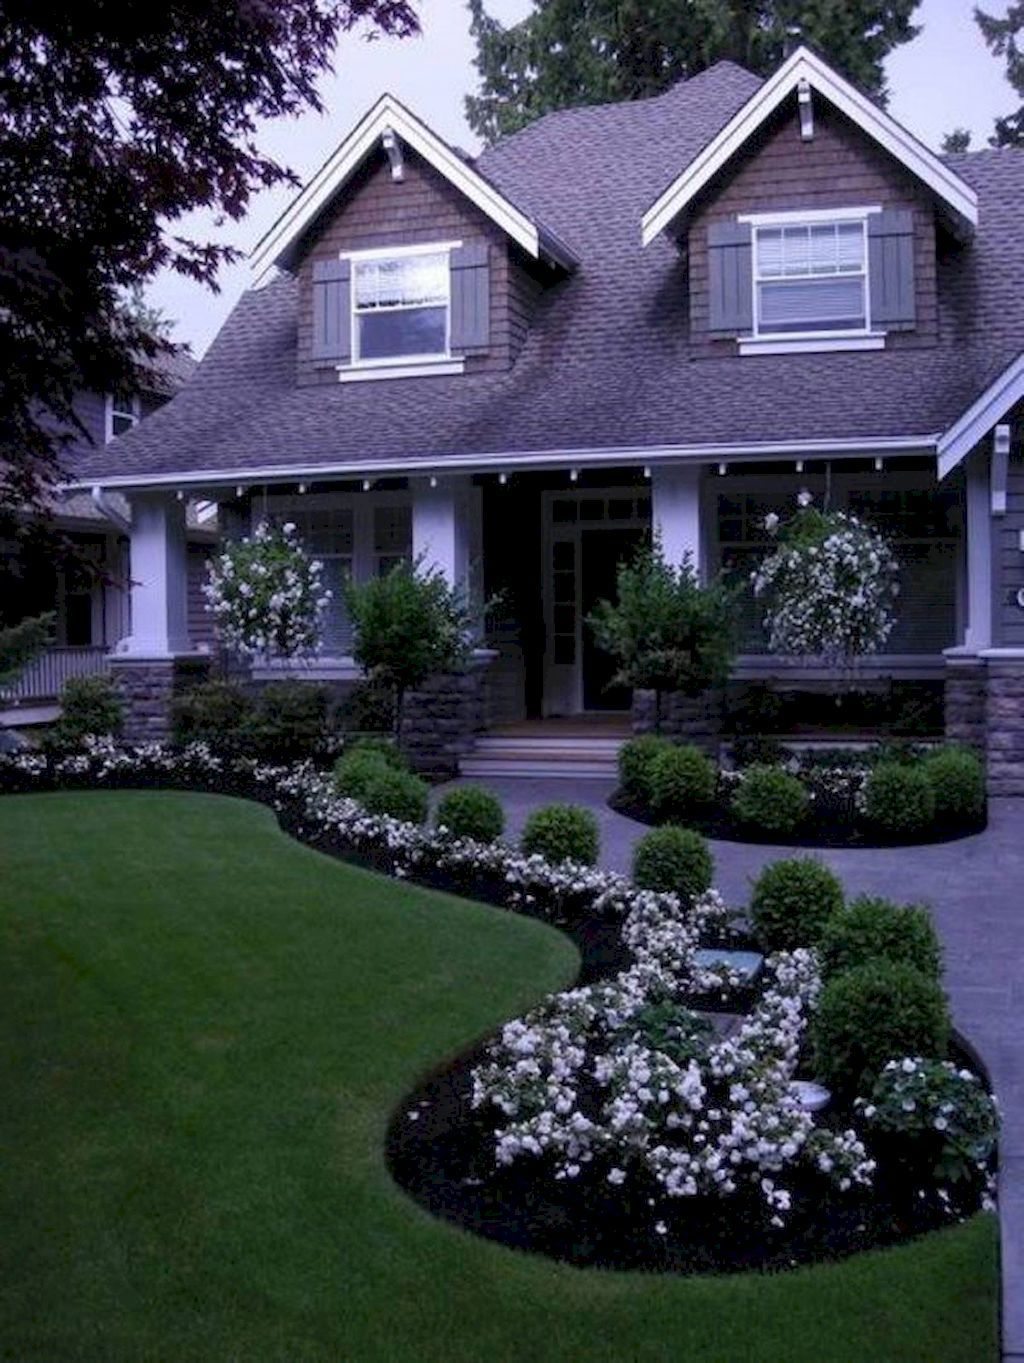 40 beautiful front yard landscaping ideas yard for House landscape